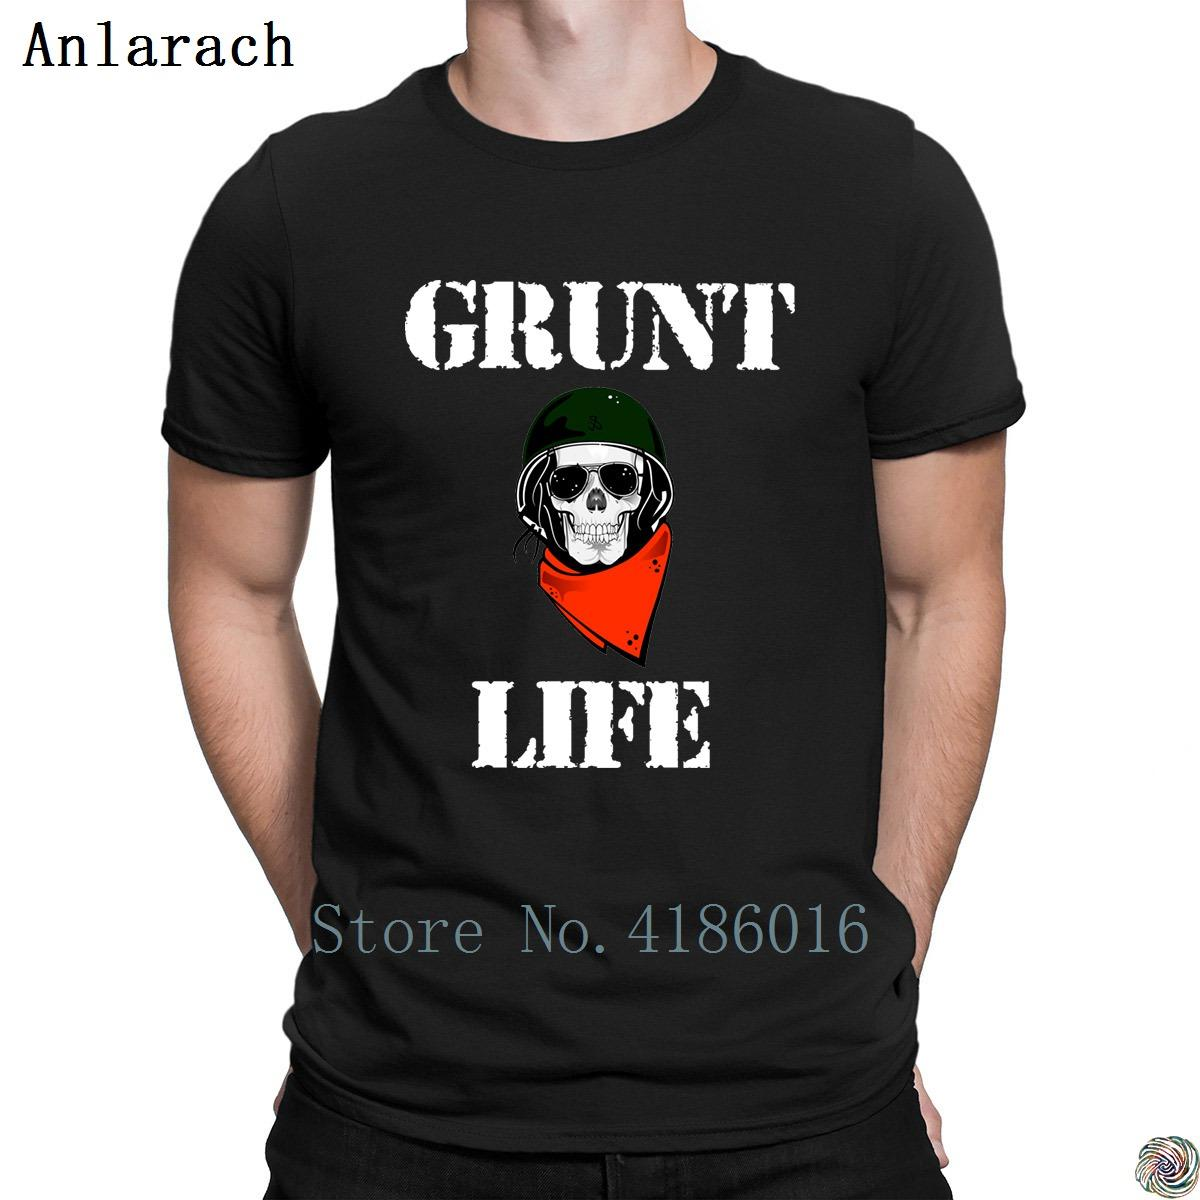 780ff5417 Grunt Life Military Tshirts Clothes Euro Size Design Classic Men'S Tshirt  Pictures Tee Tops Anti Wrinkle Spring Best T Shirts Shirts Online From  Dzuprightg, ...